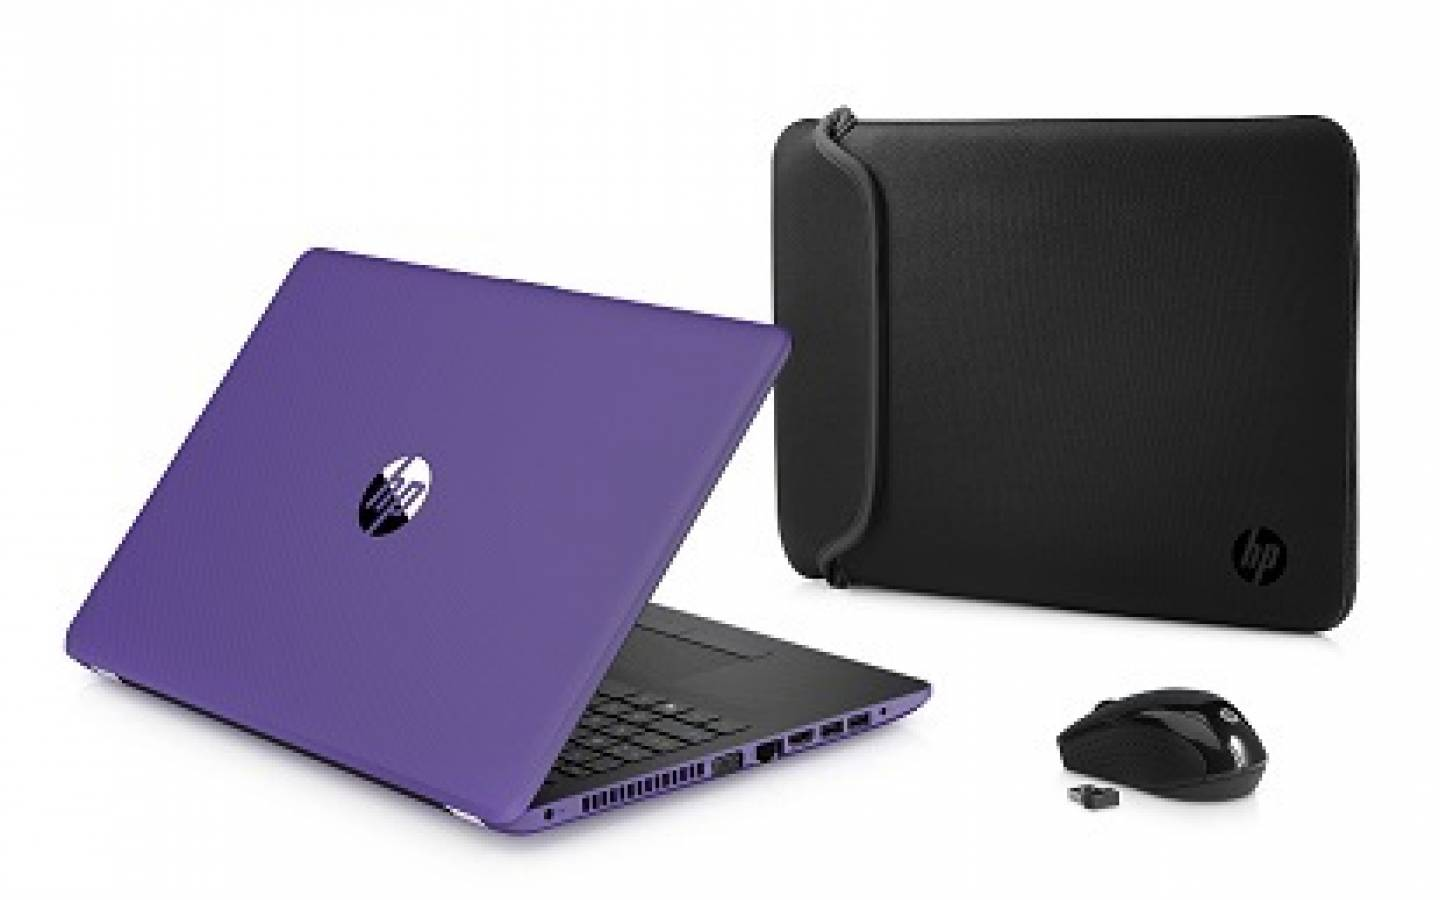 Notebook HP 15-bw003wm E2-9000e 15.6 DVDRW Purple